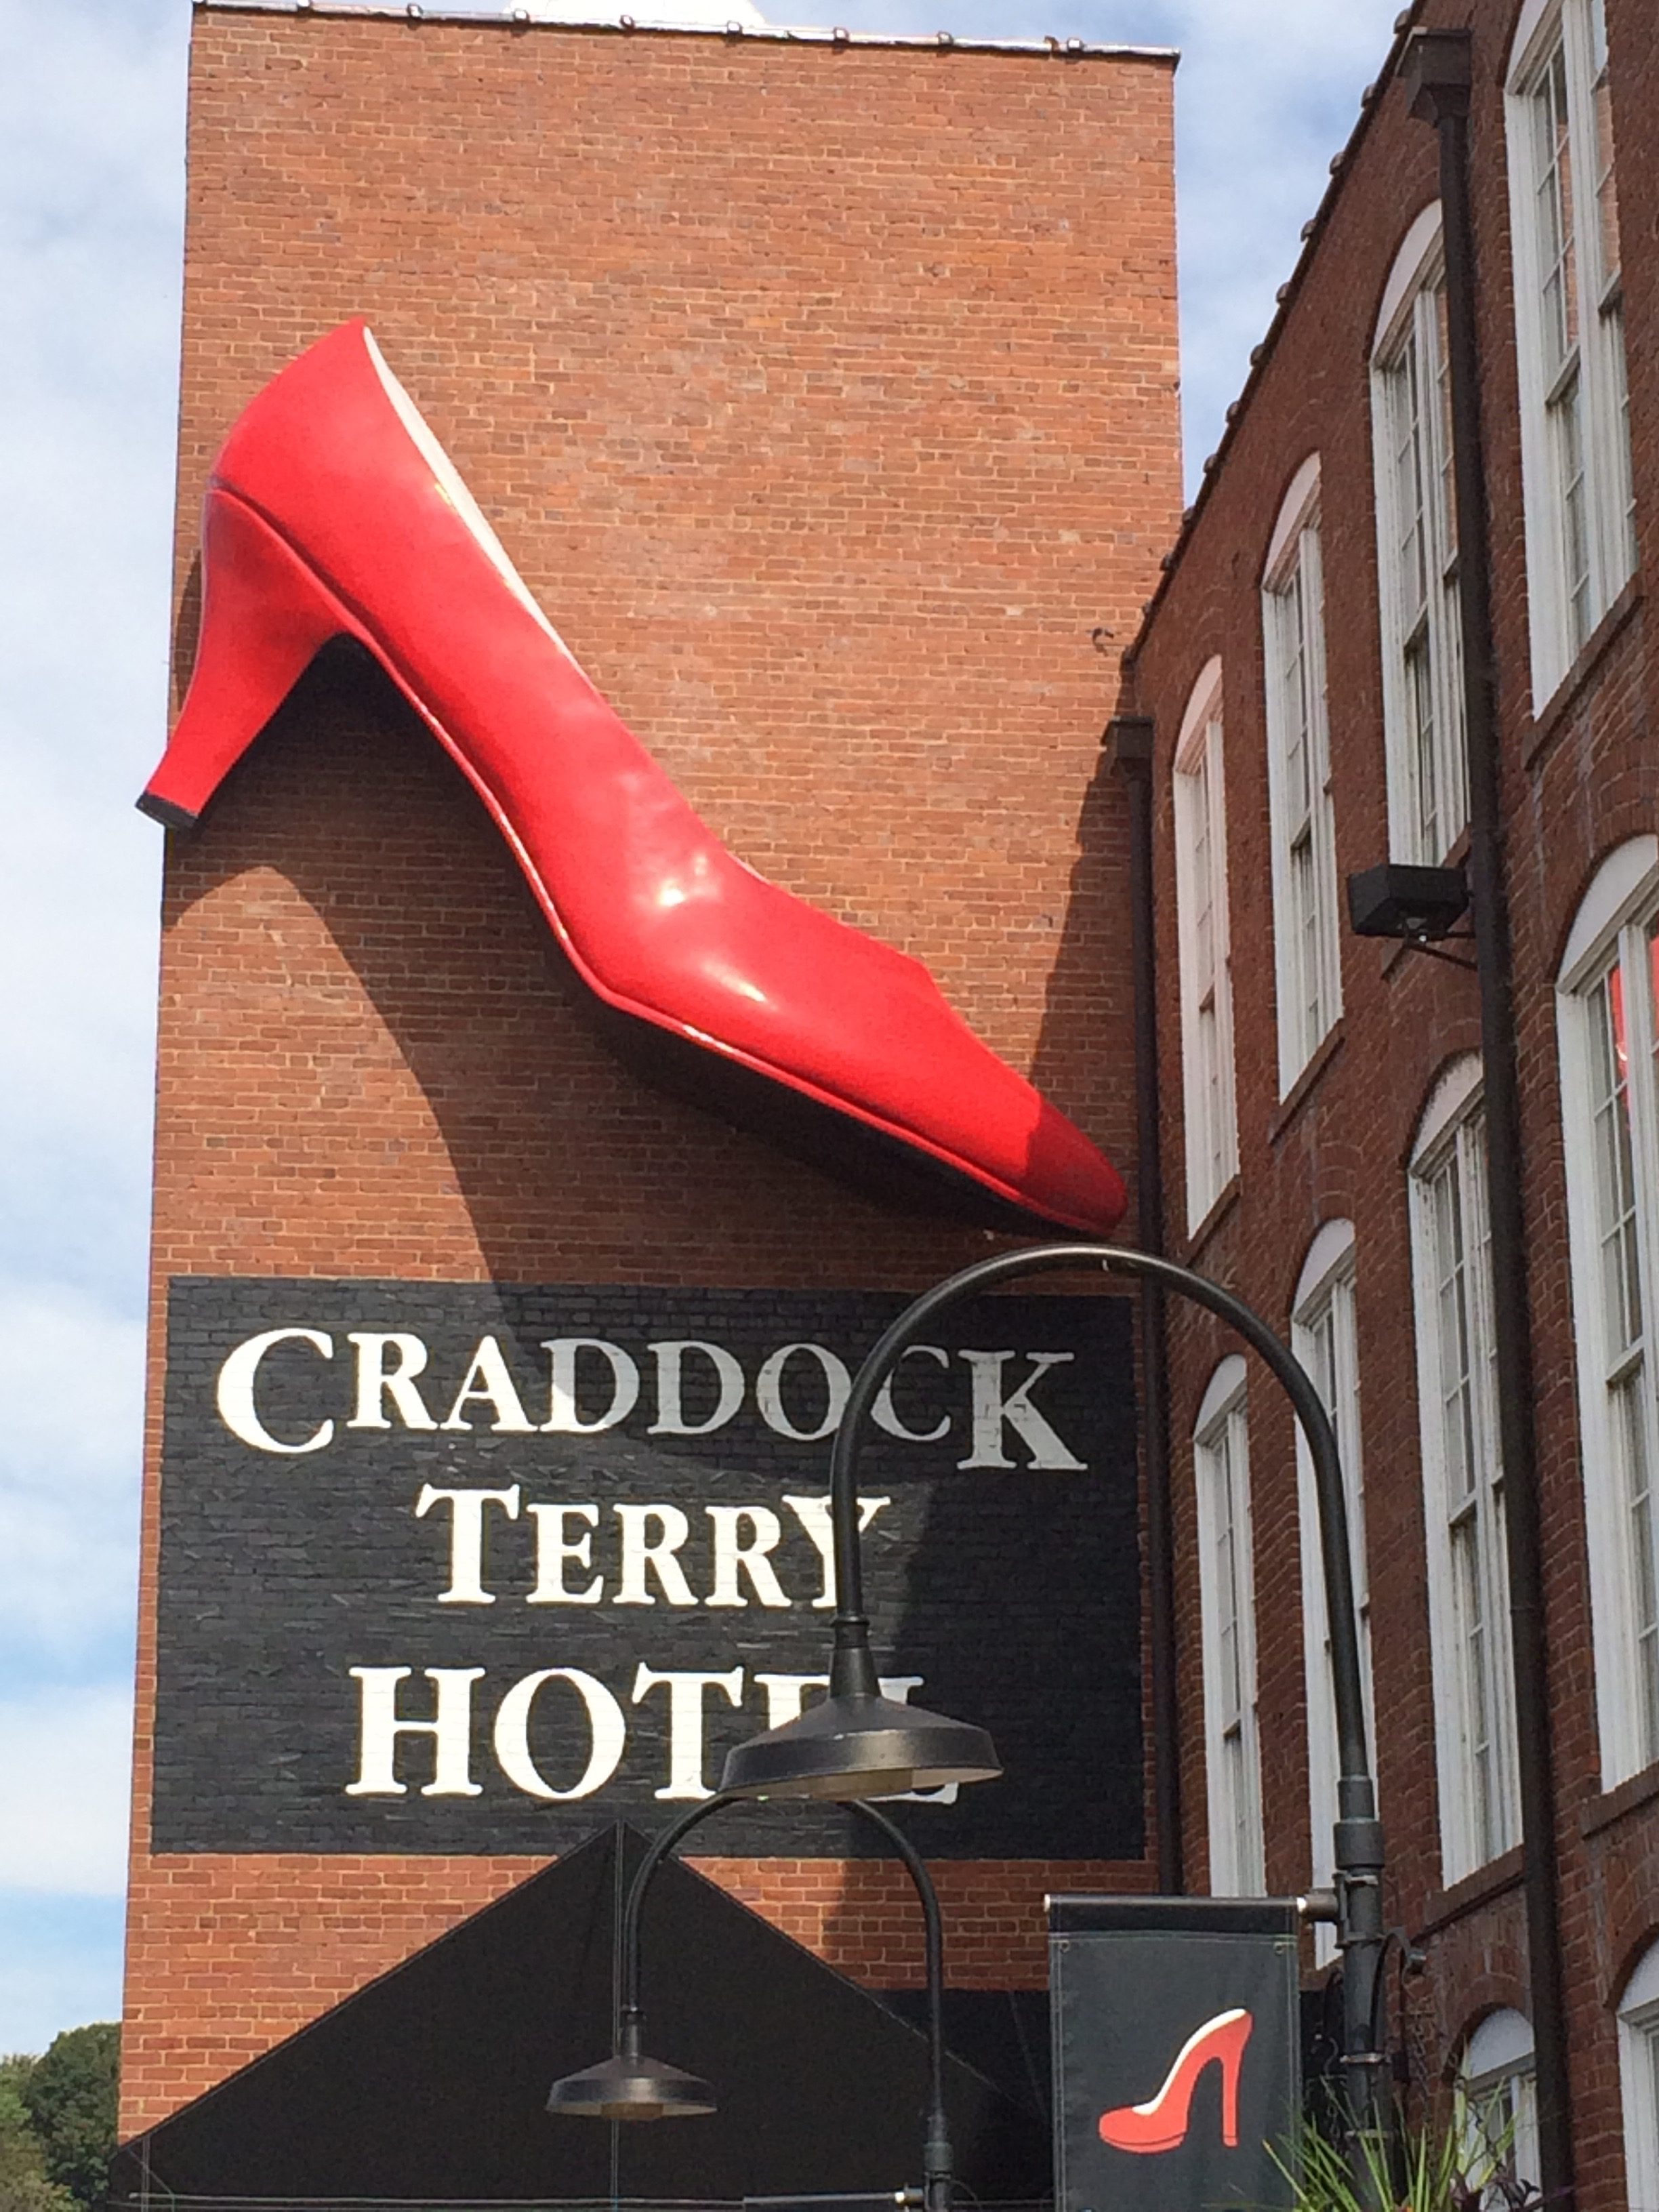 Caption: Craddock Terry Hotel, Credit: Photo by Tonya Fitzpatrick